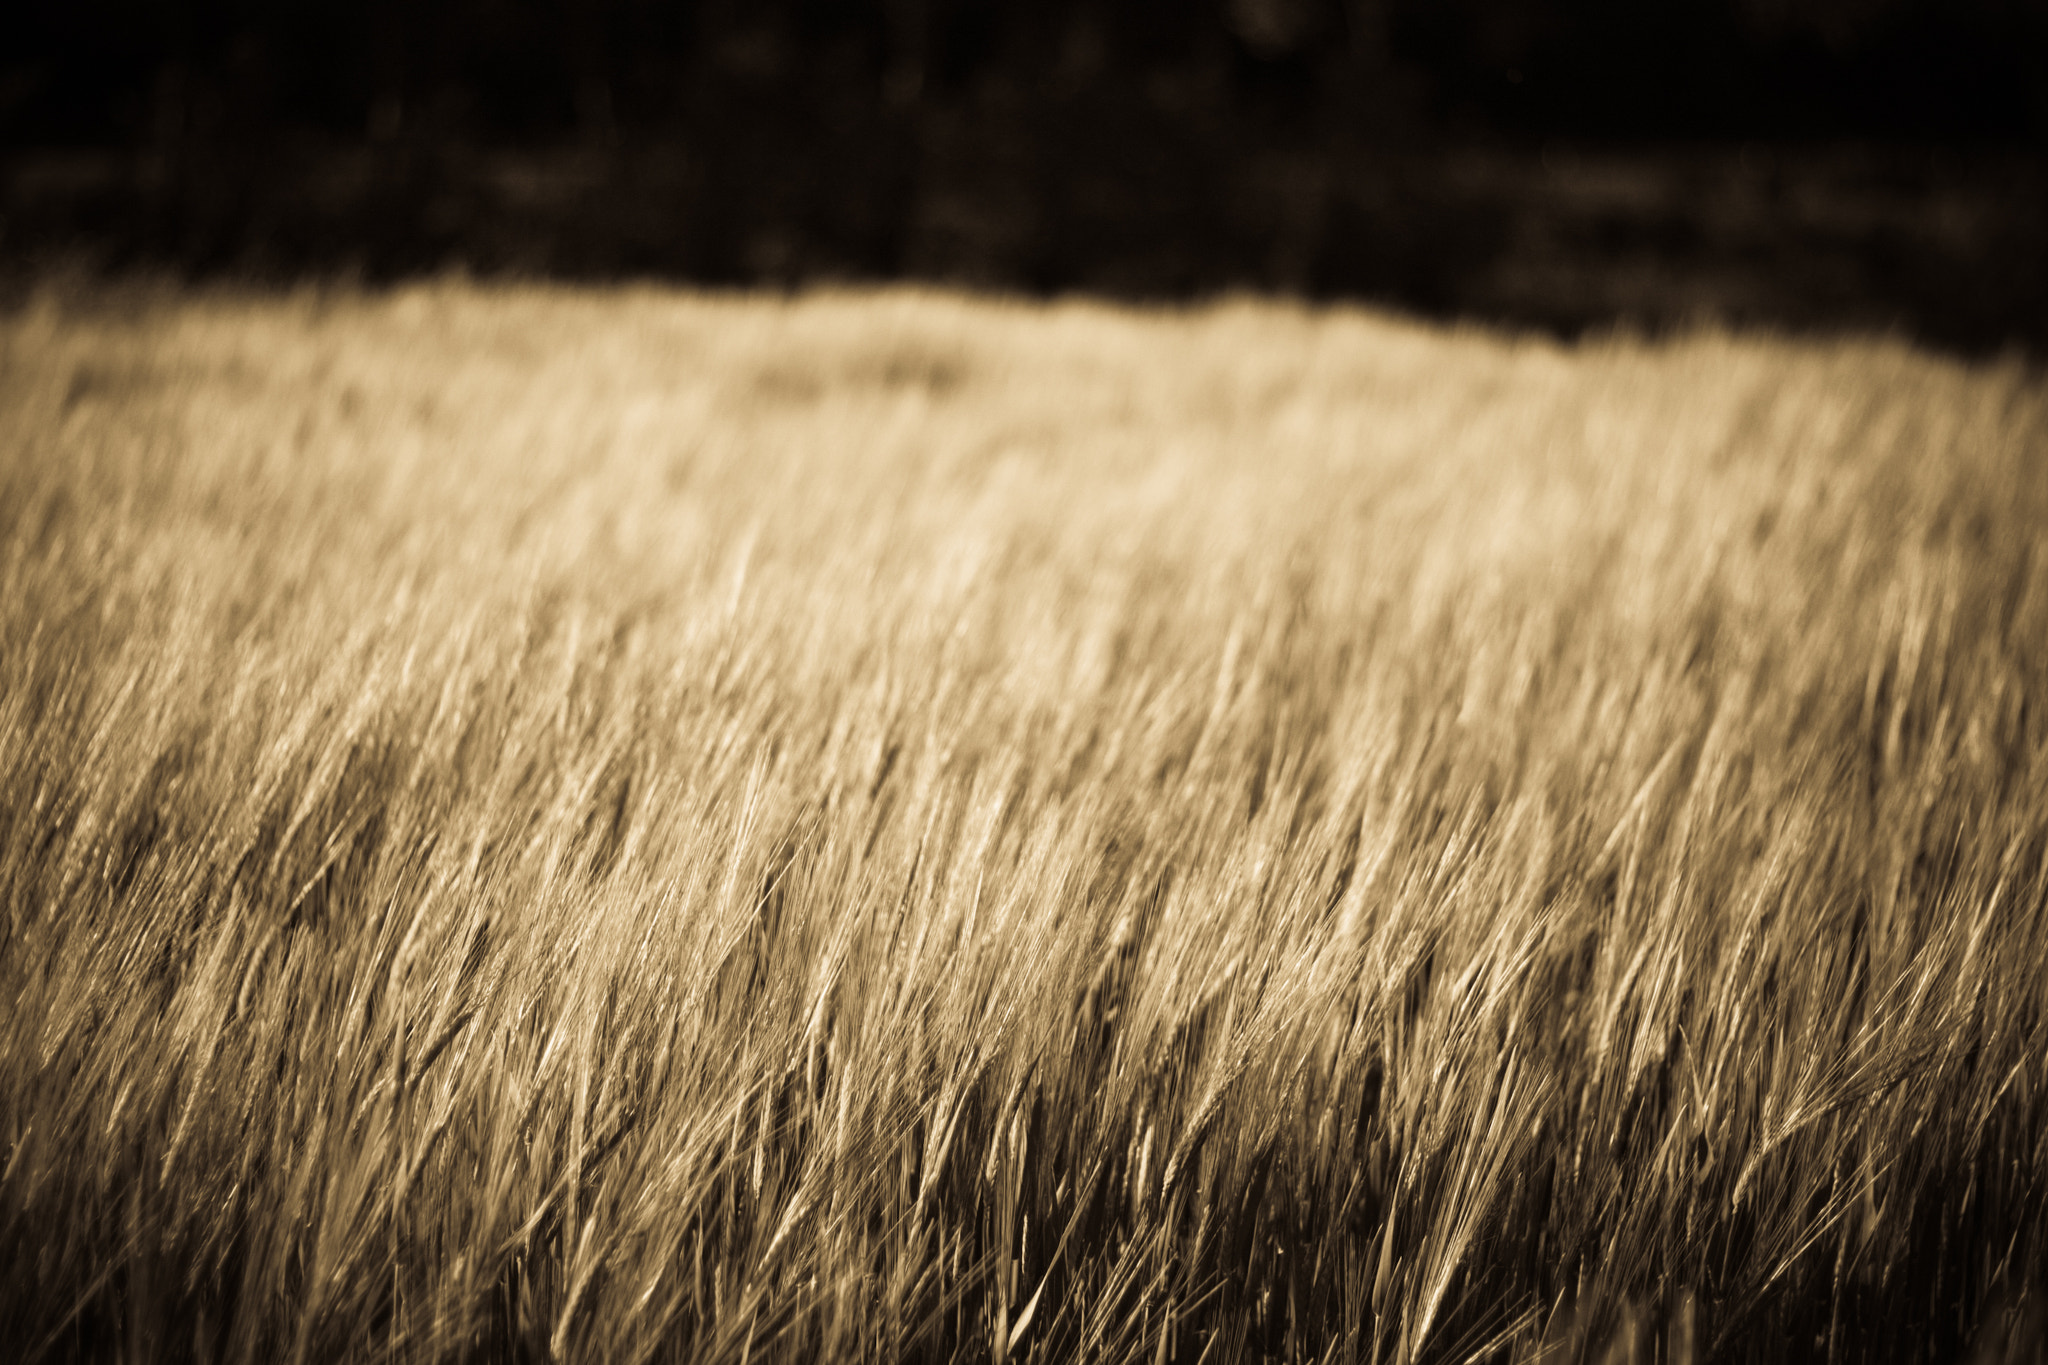 Photograph Grass by Christian Schuster on 500px